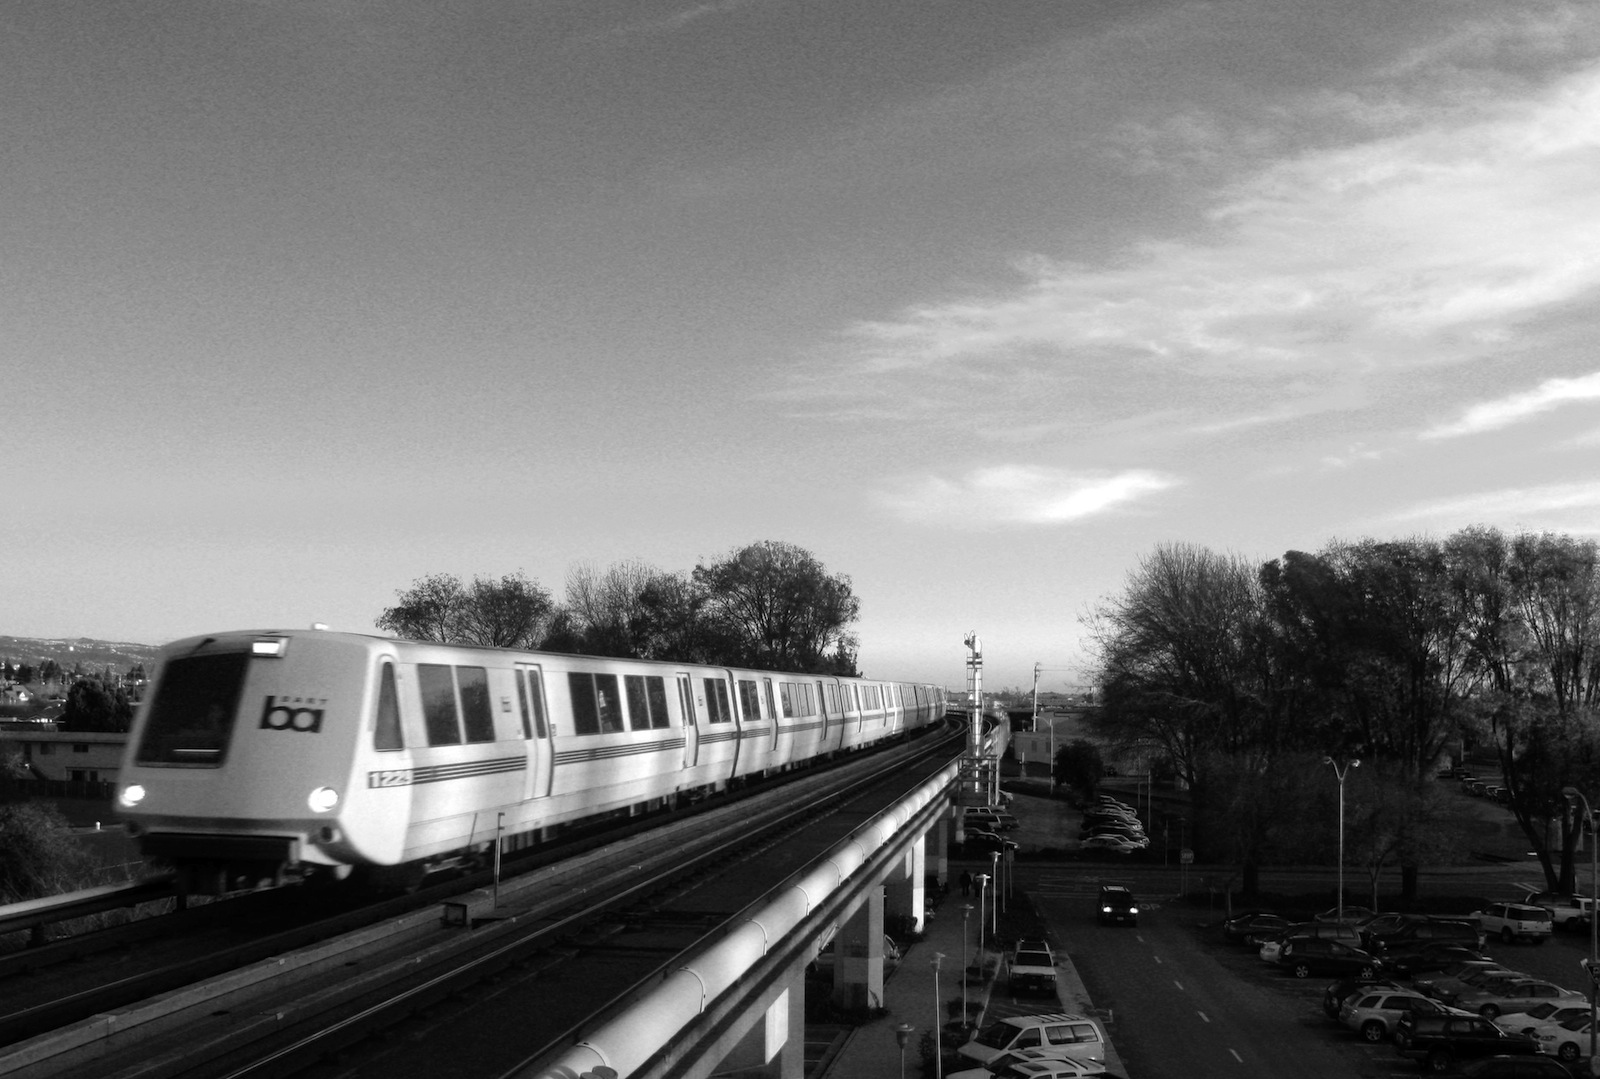 Black and white photo of BART train.